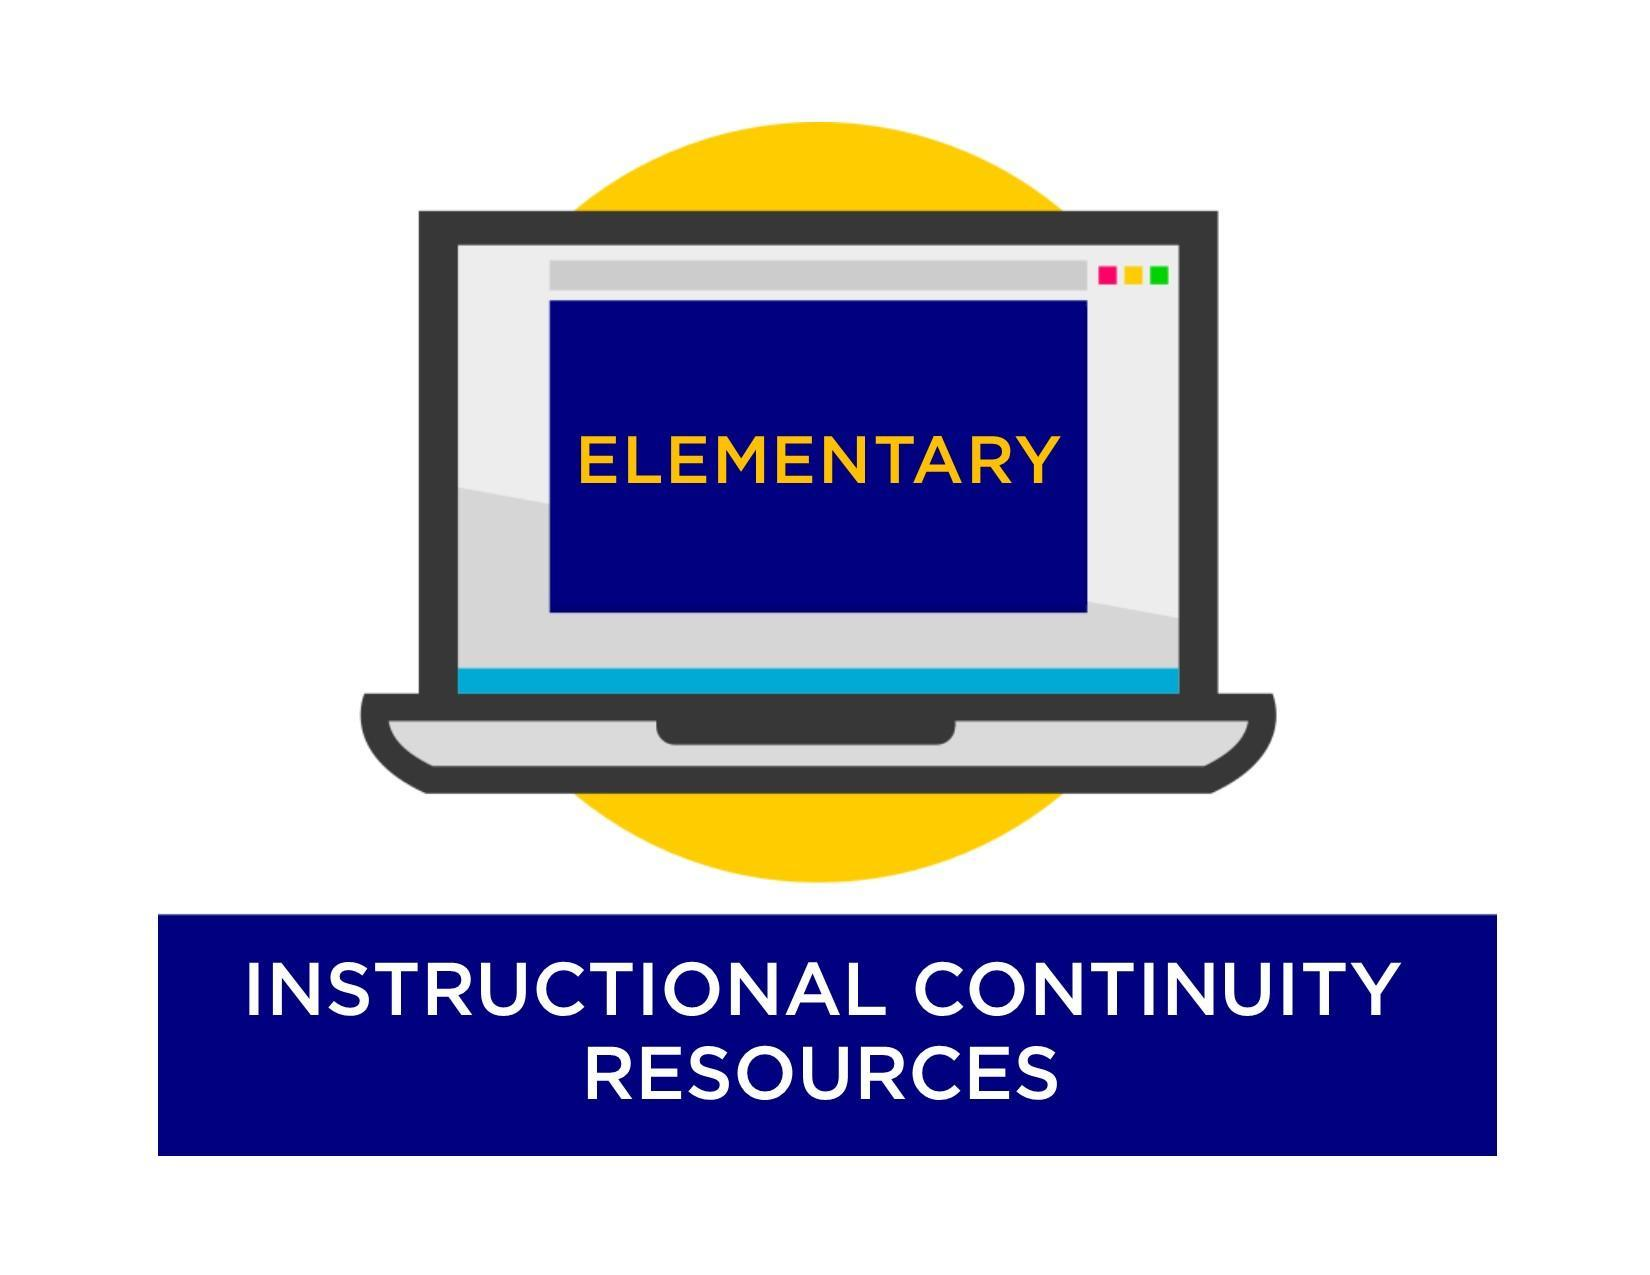 logo for online resources for elementary